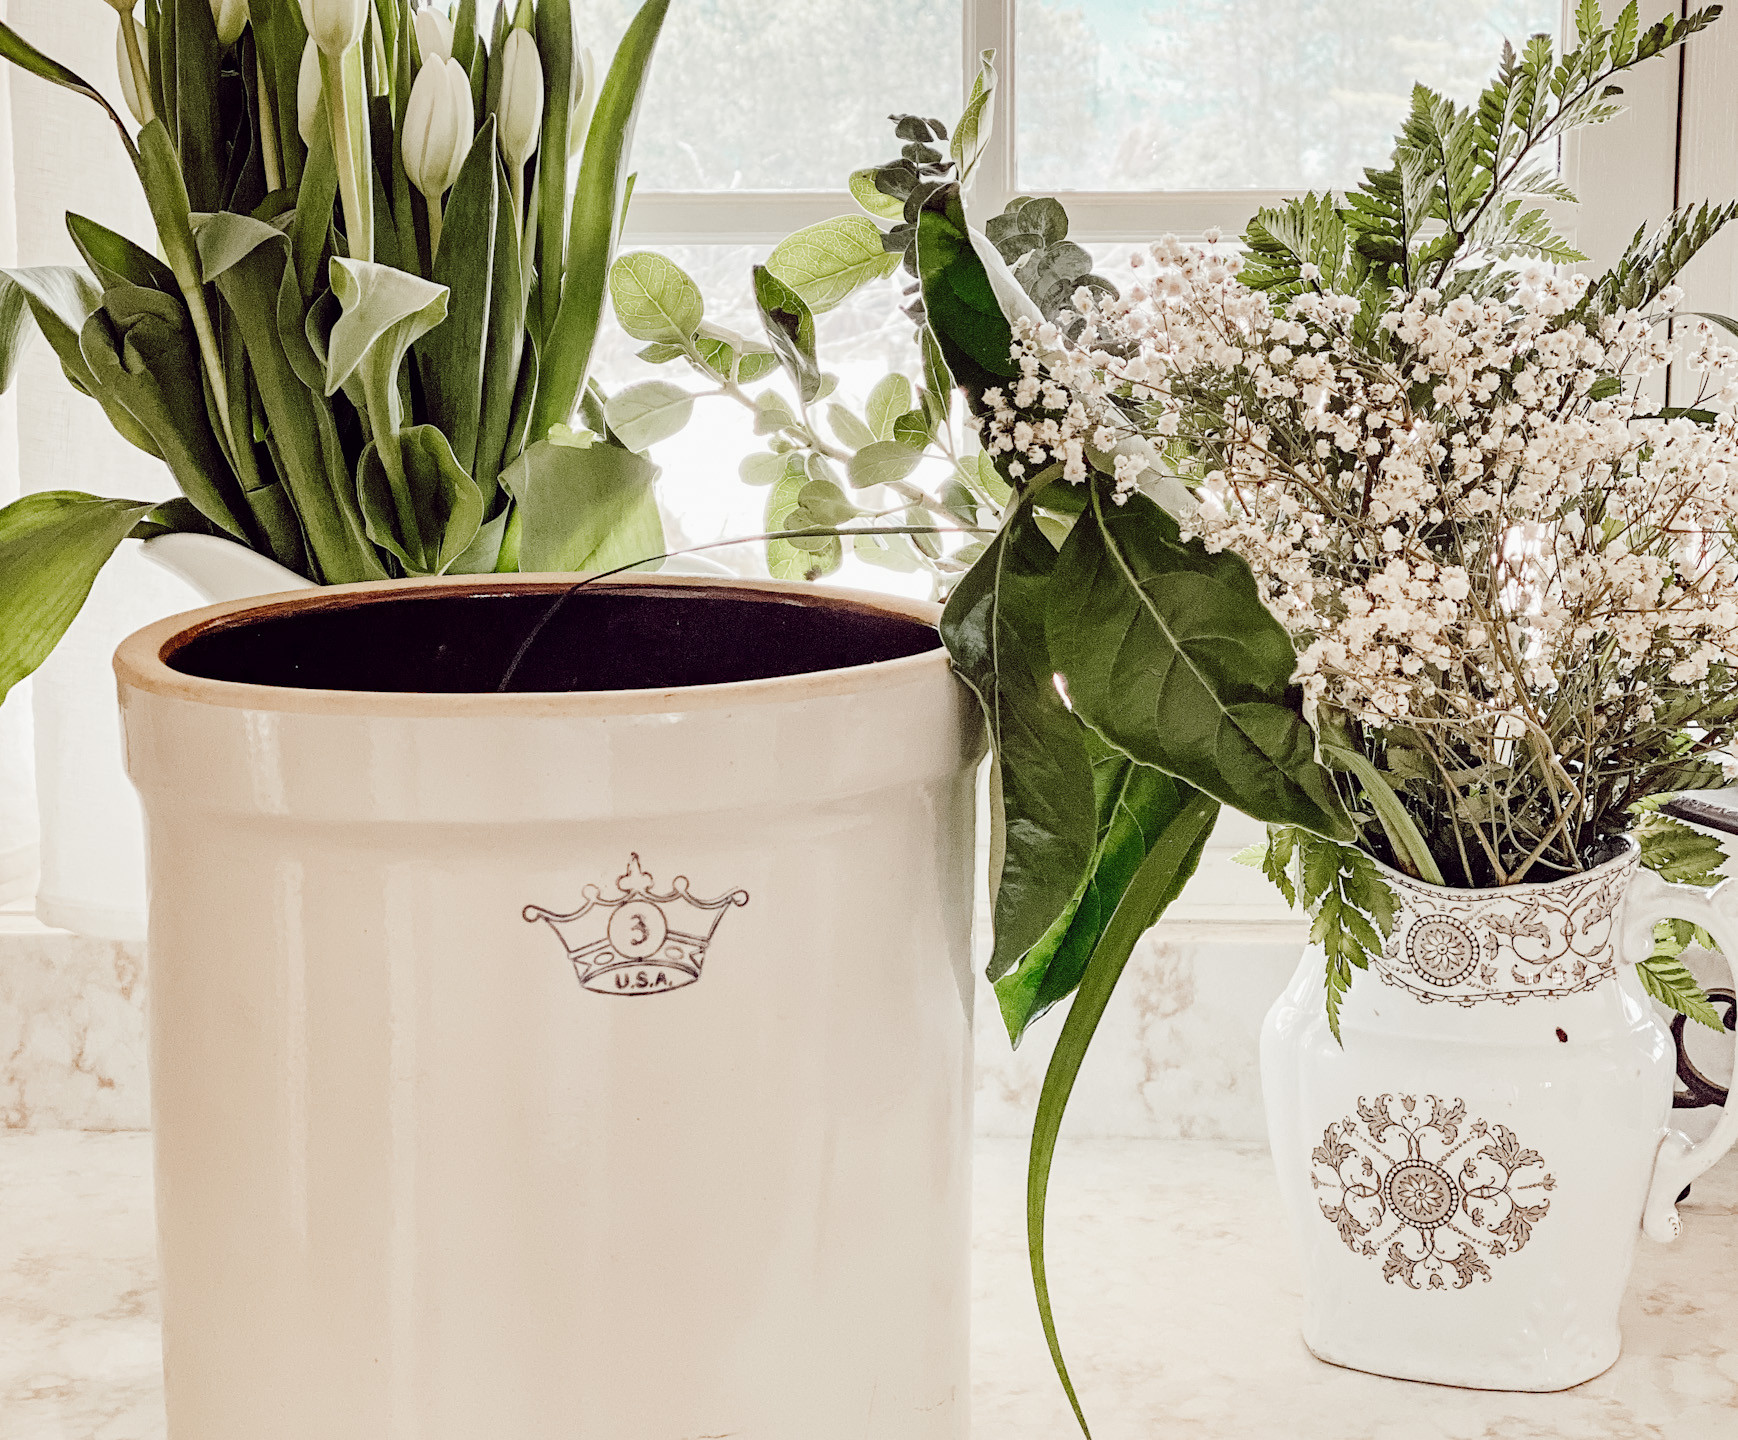 Antique Crocks and White Tulips